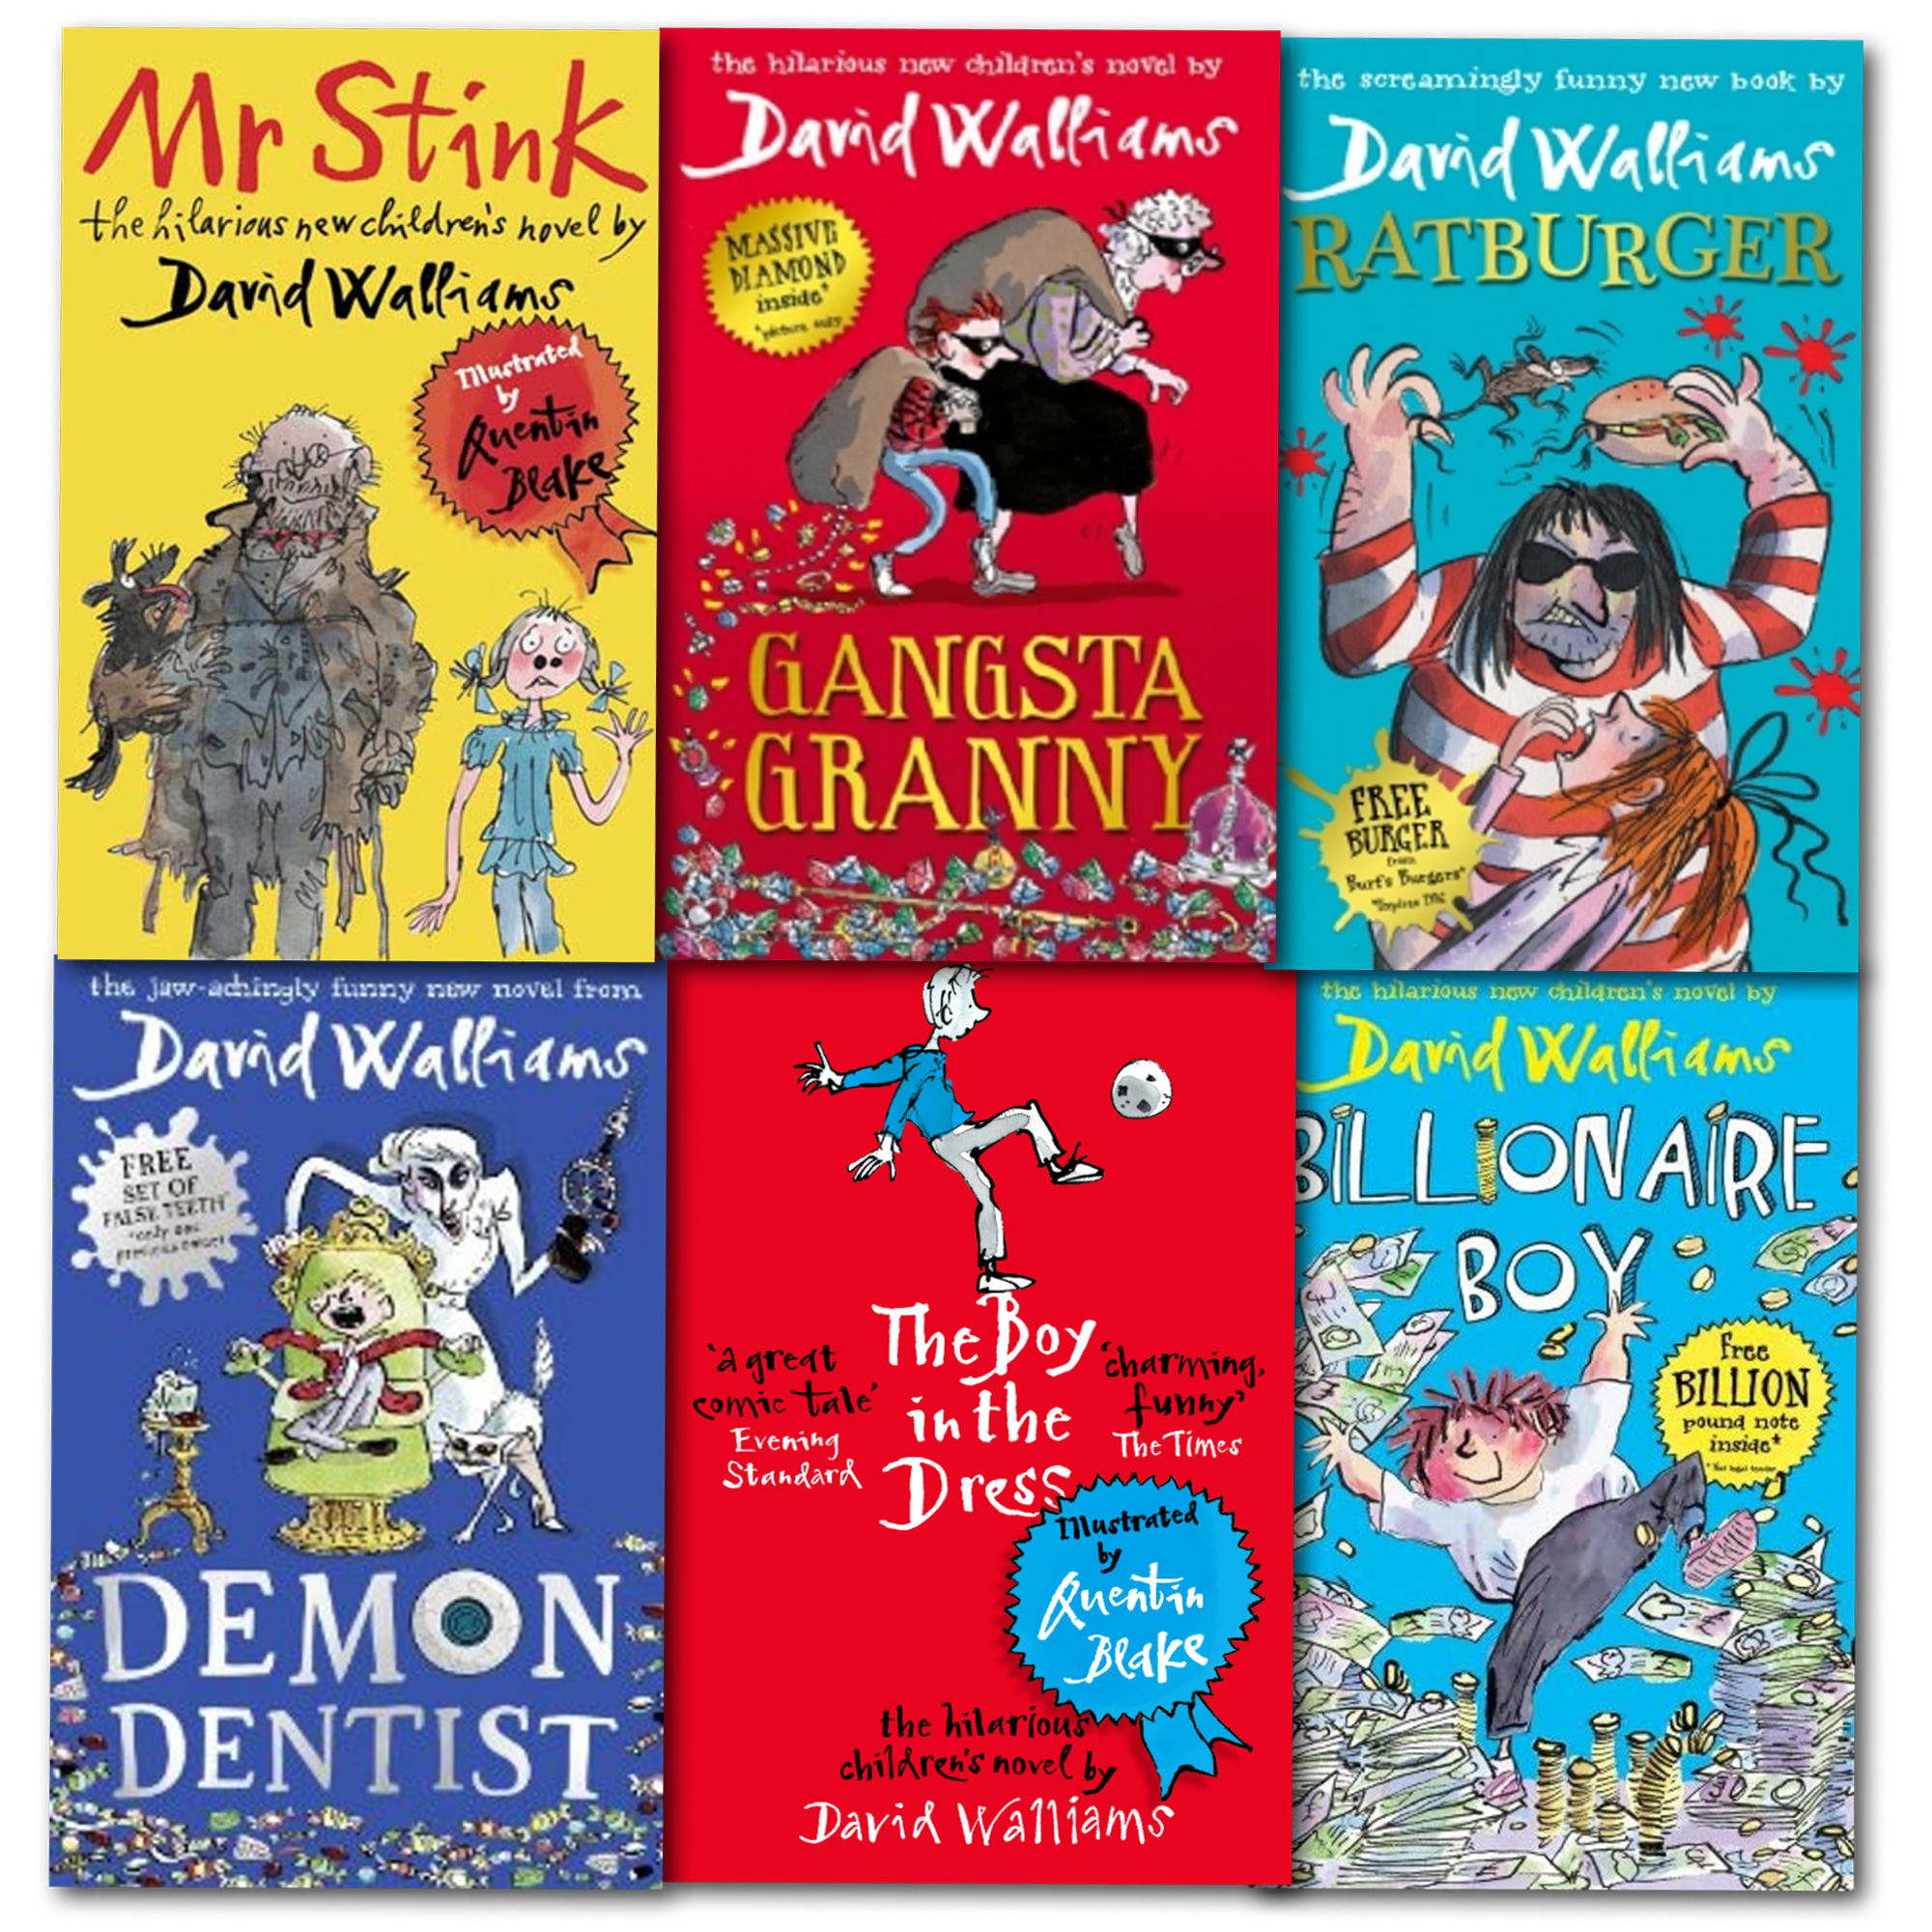 Reviews children s book review demon dentist david walliams - Reviews Children S Book Review Demon Dentist David Walliams 42